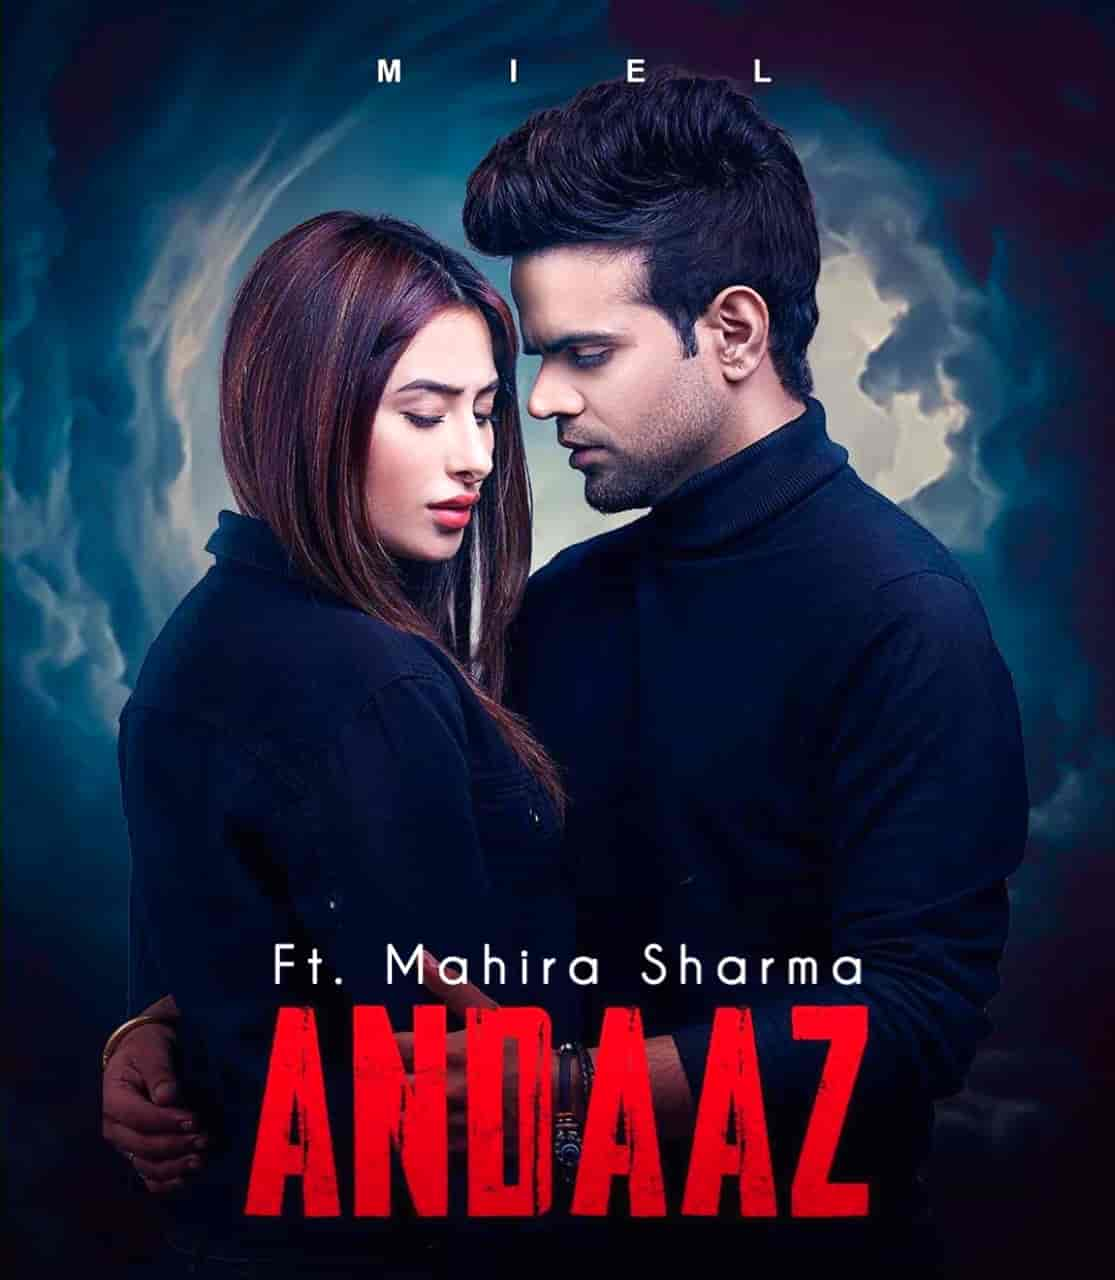 Andaaz Puniabi Song Image Features Miel and Mahira Sharma